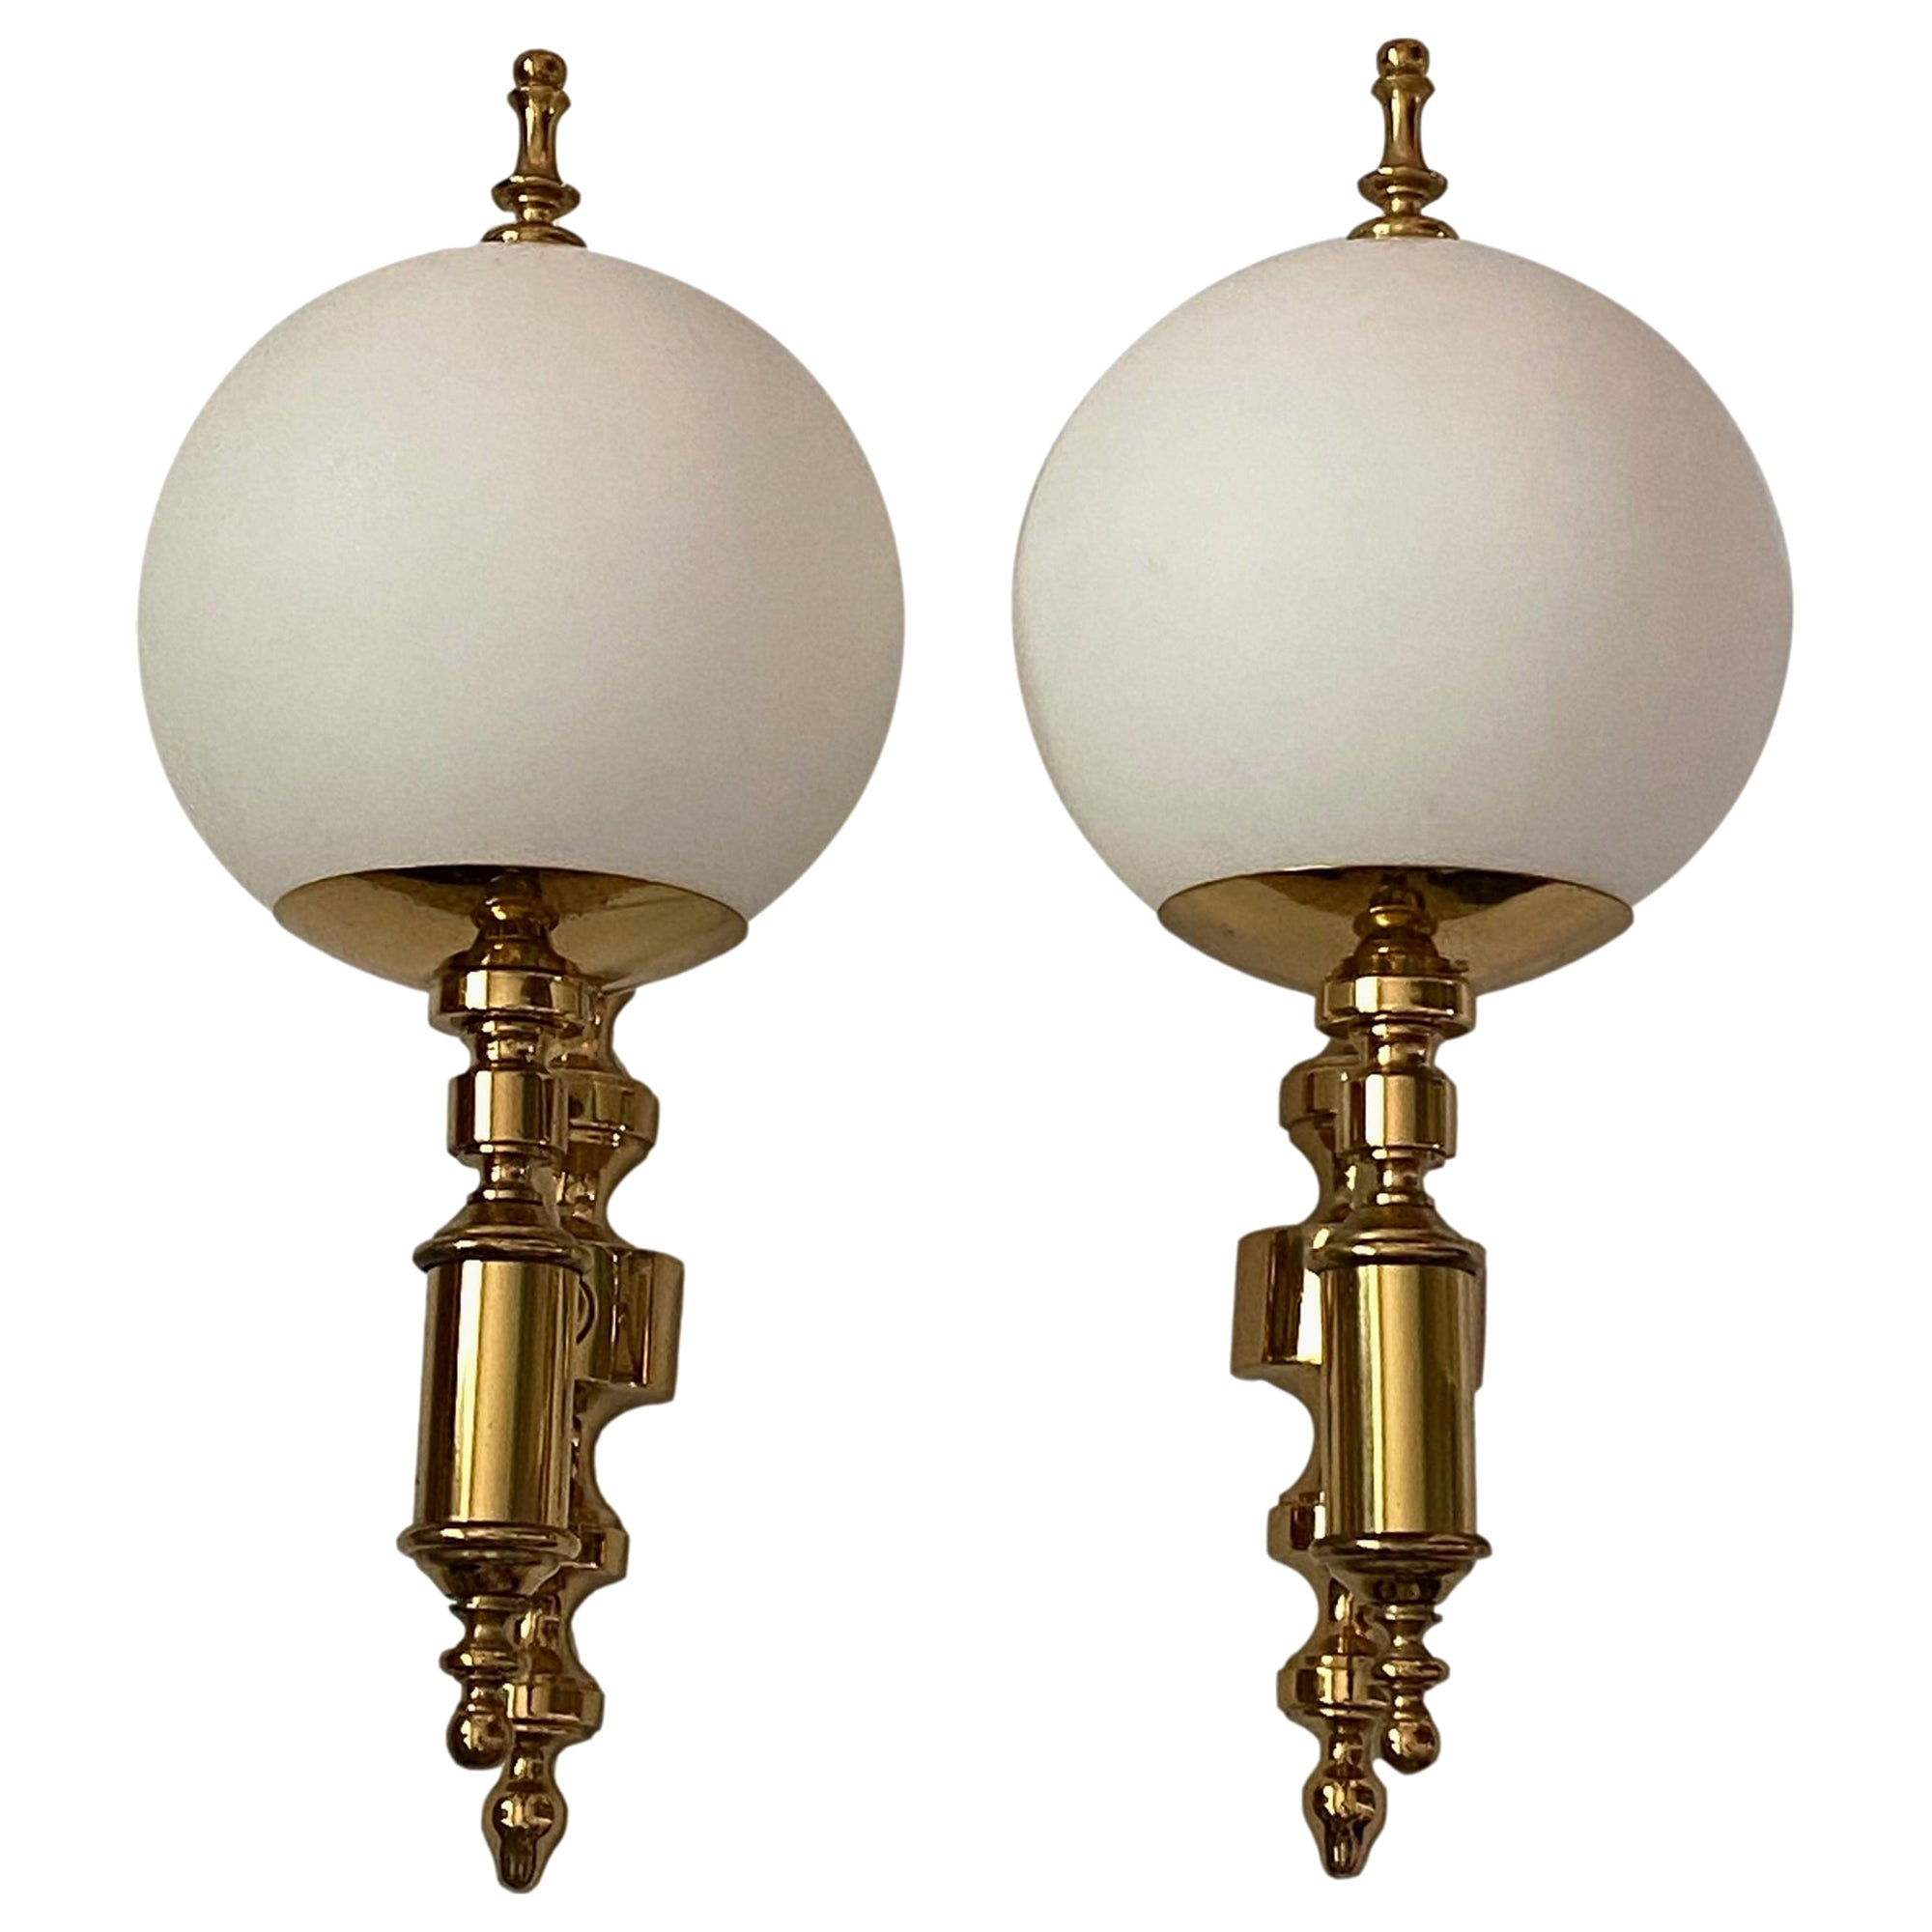 Pair of Art Deco Style Brass and Milk Glass Sconces Sölken Leuchten, Germany